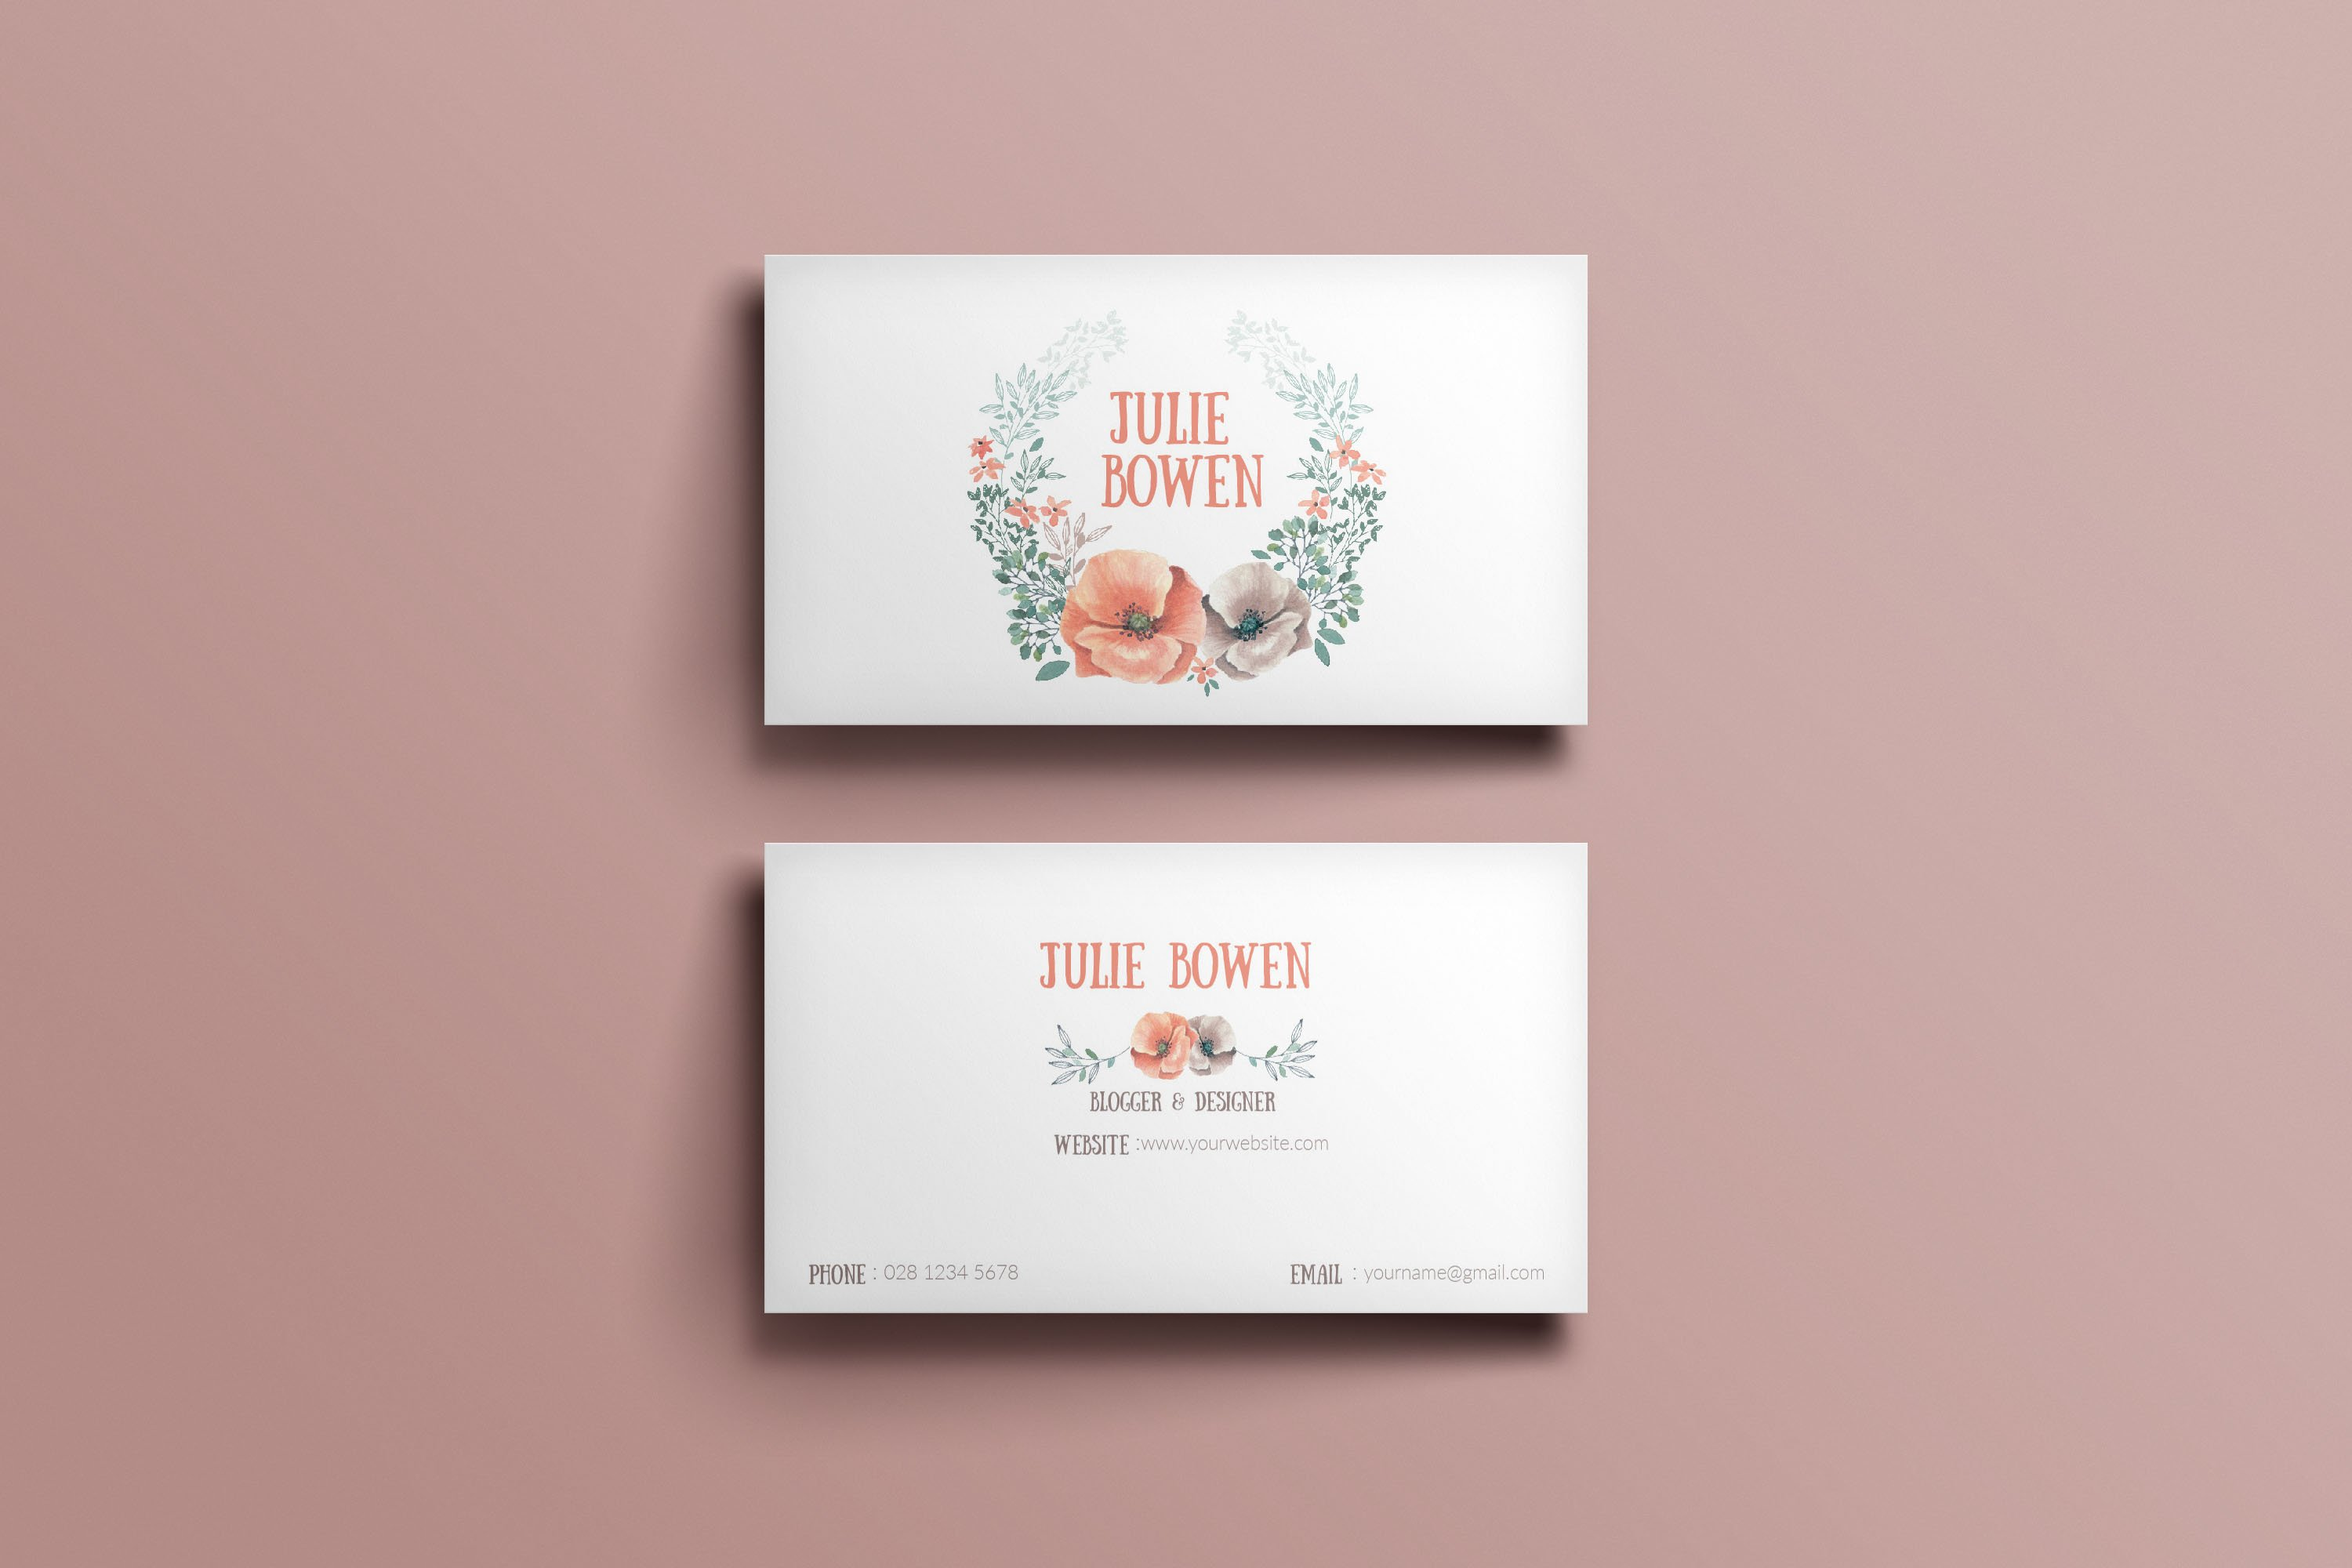 Floral business card template business card templates creative floral business card template business card templates creative market accmission Choice Image